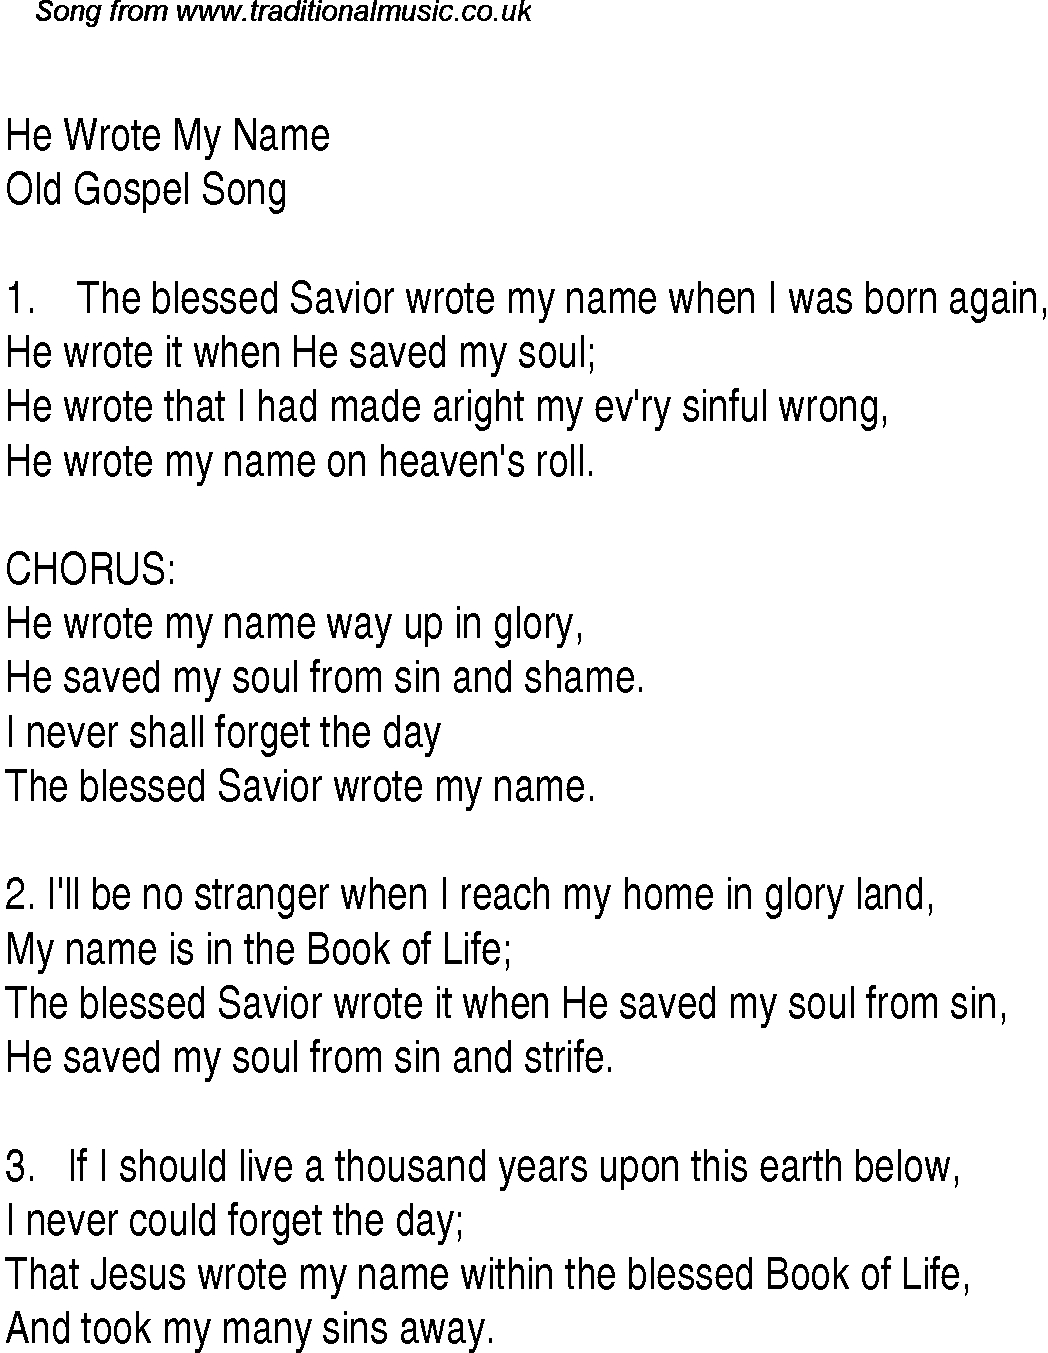 Blessed Be Your Name Chords He Wrote My Name Christian Gospel Song Lyrics And Chords